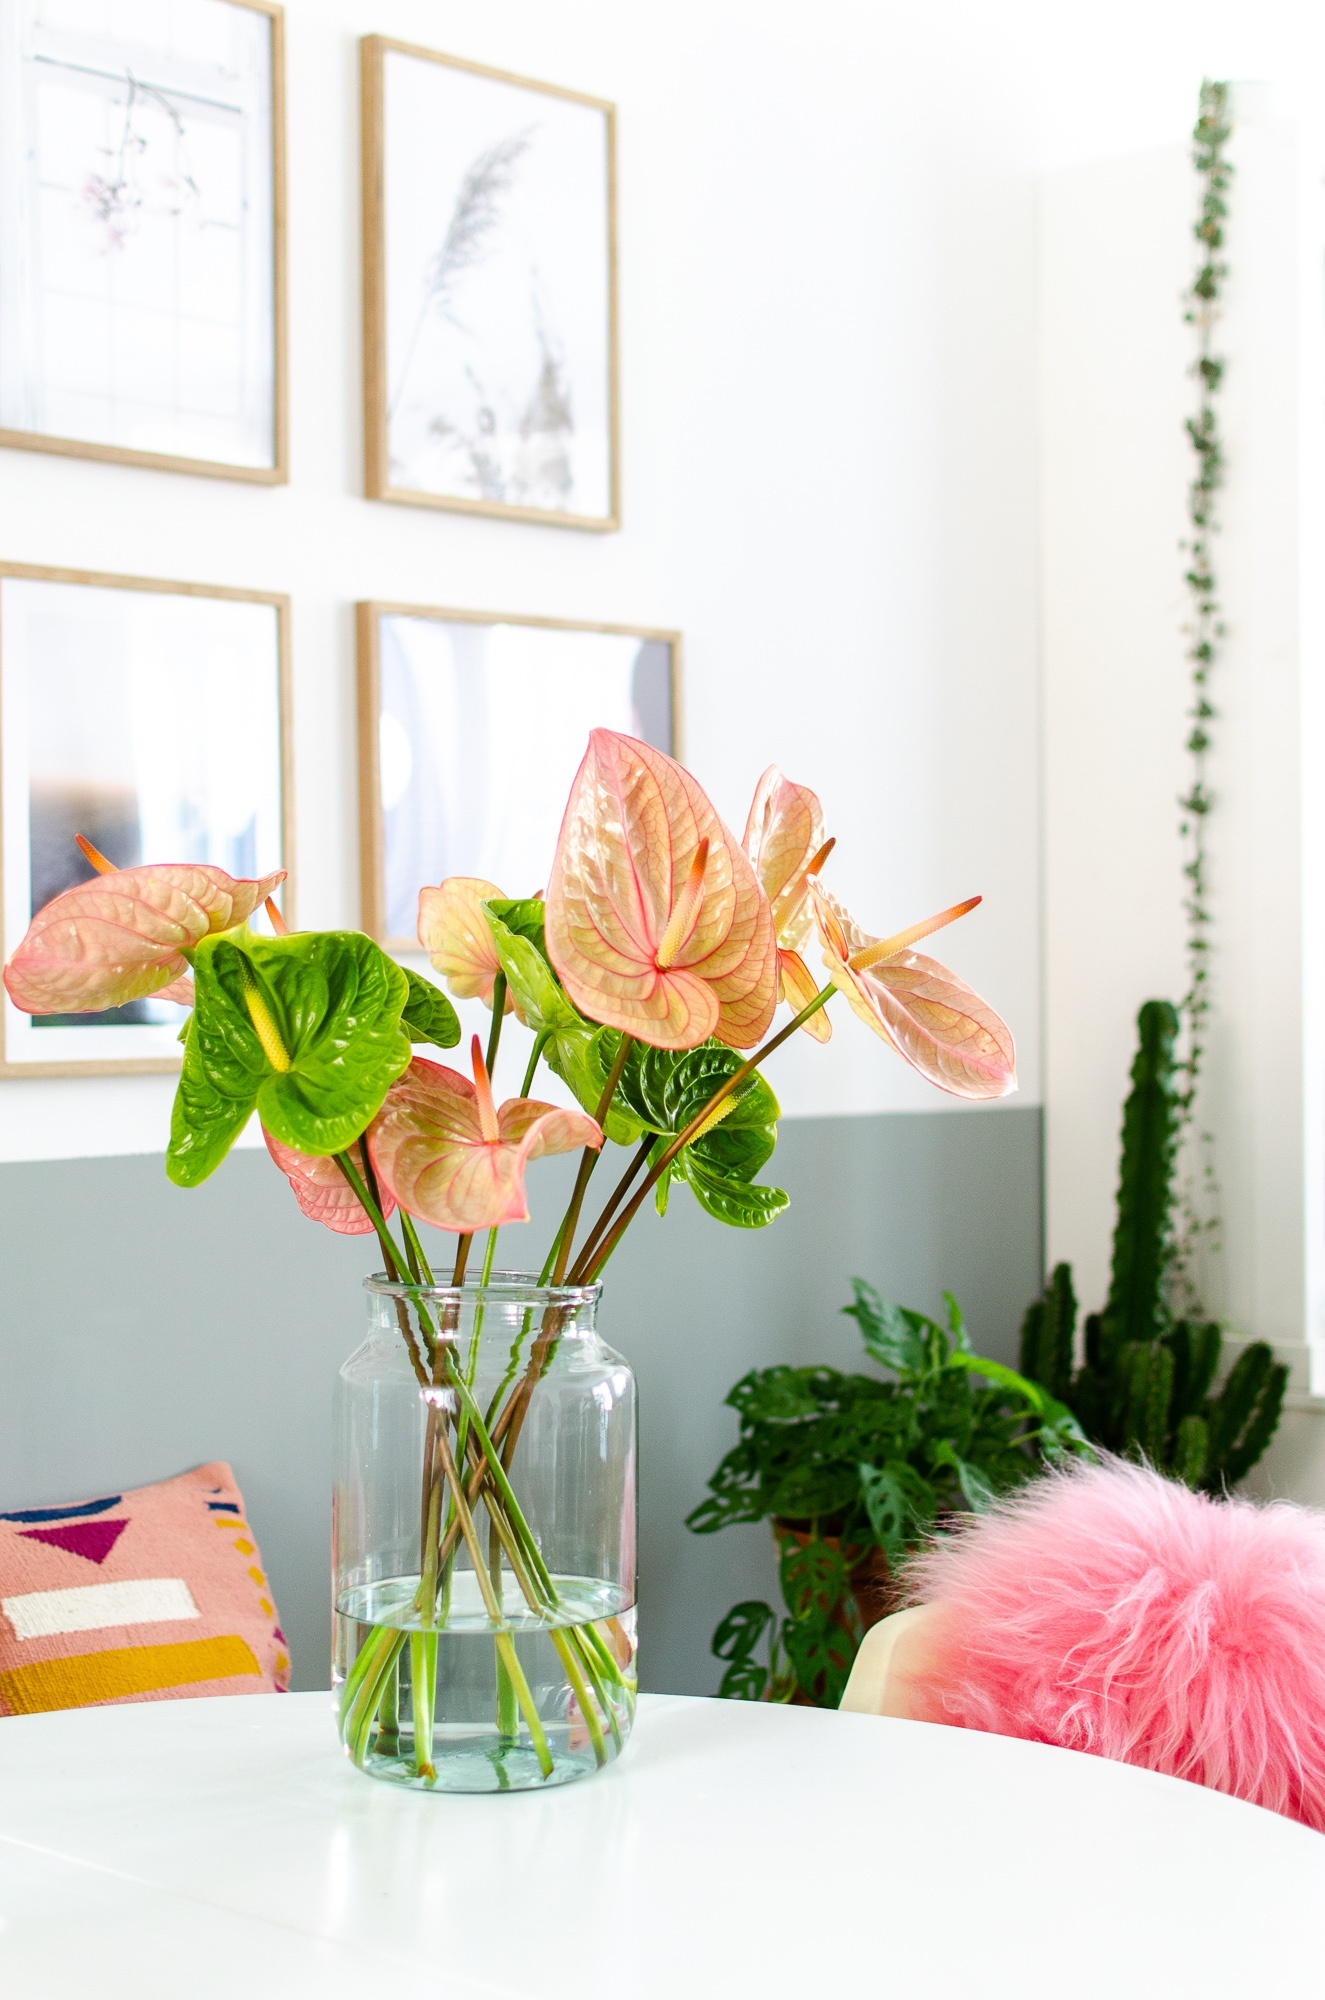 Making a bouquet using cut Anthurium flowers: tips & inspiration